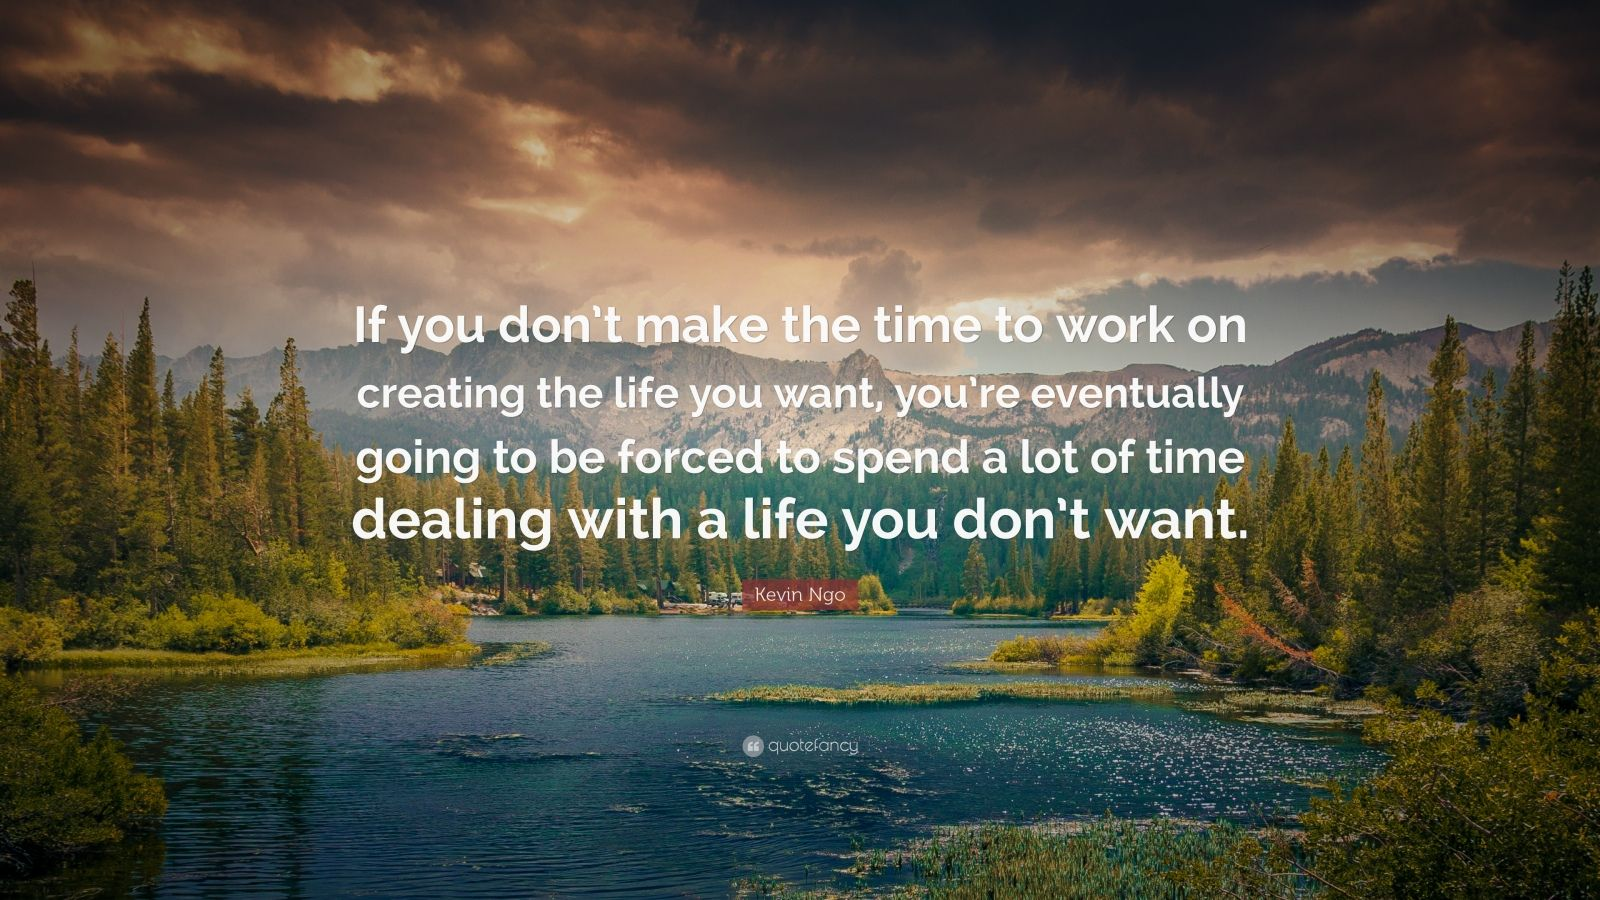 "Kevin Ngo Quote: ""If you don't make the time to work on creating the life you want, you're eventually going to be forced to spend a lot of time dealing with a life you don't want."""